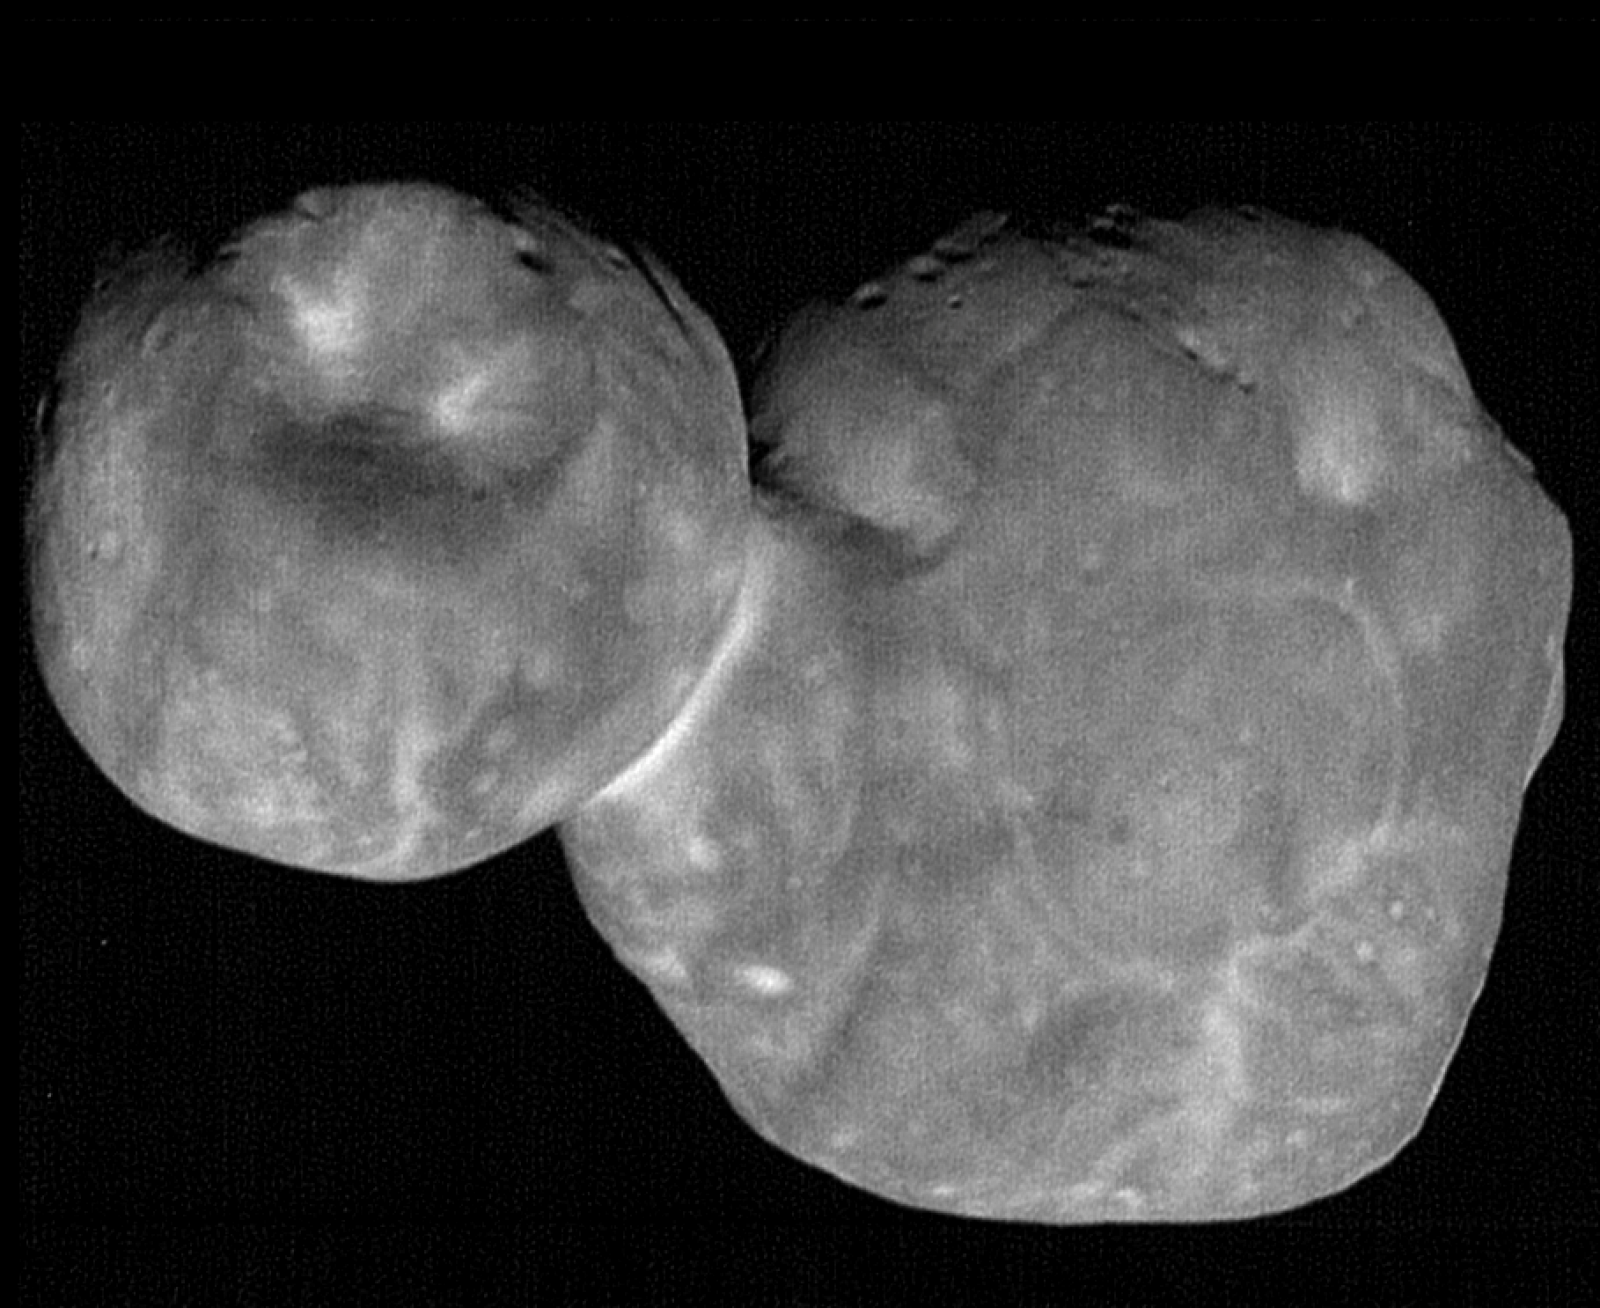 The most detailed images of Ultima Thule -- obtained just minutes before the spacecraft's closest approach at 12:33 a.m. EST on Jan. 1 -- have a resolution of about 110 feet or 33 meters per pixel. Photo Credit: NASA/Johns Hopkins Applied Physics Laboratory/Southwest Research Institute, National Optical Astronomy Observatory